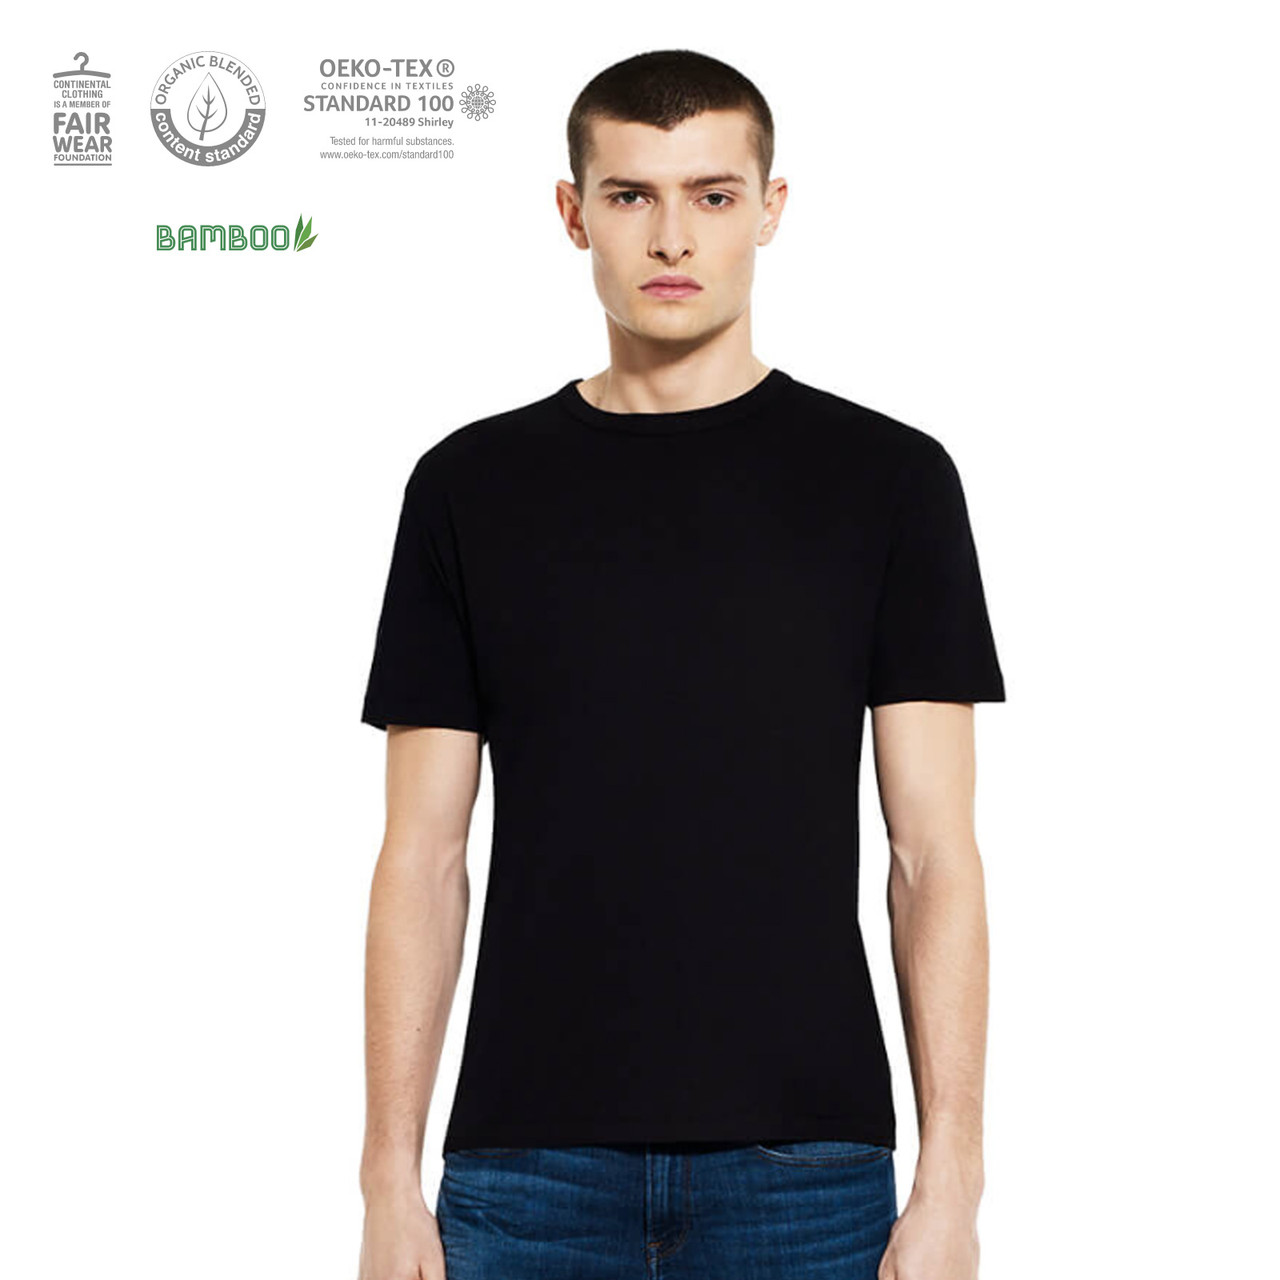 jersey t shirt images